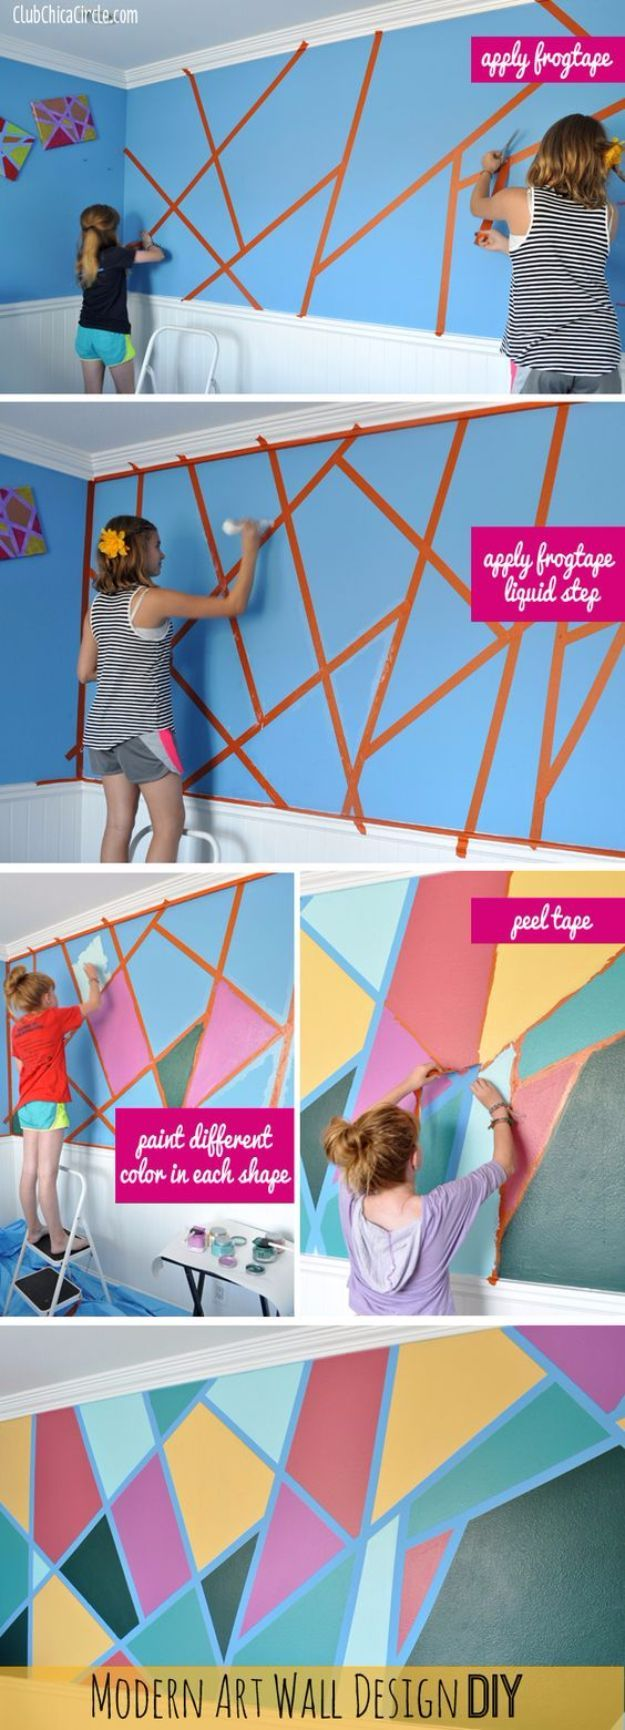 Unique bedroom wall paint ideas - 34 Cool Ways To Paint Walls